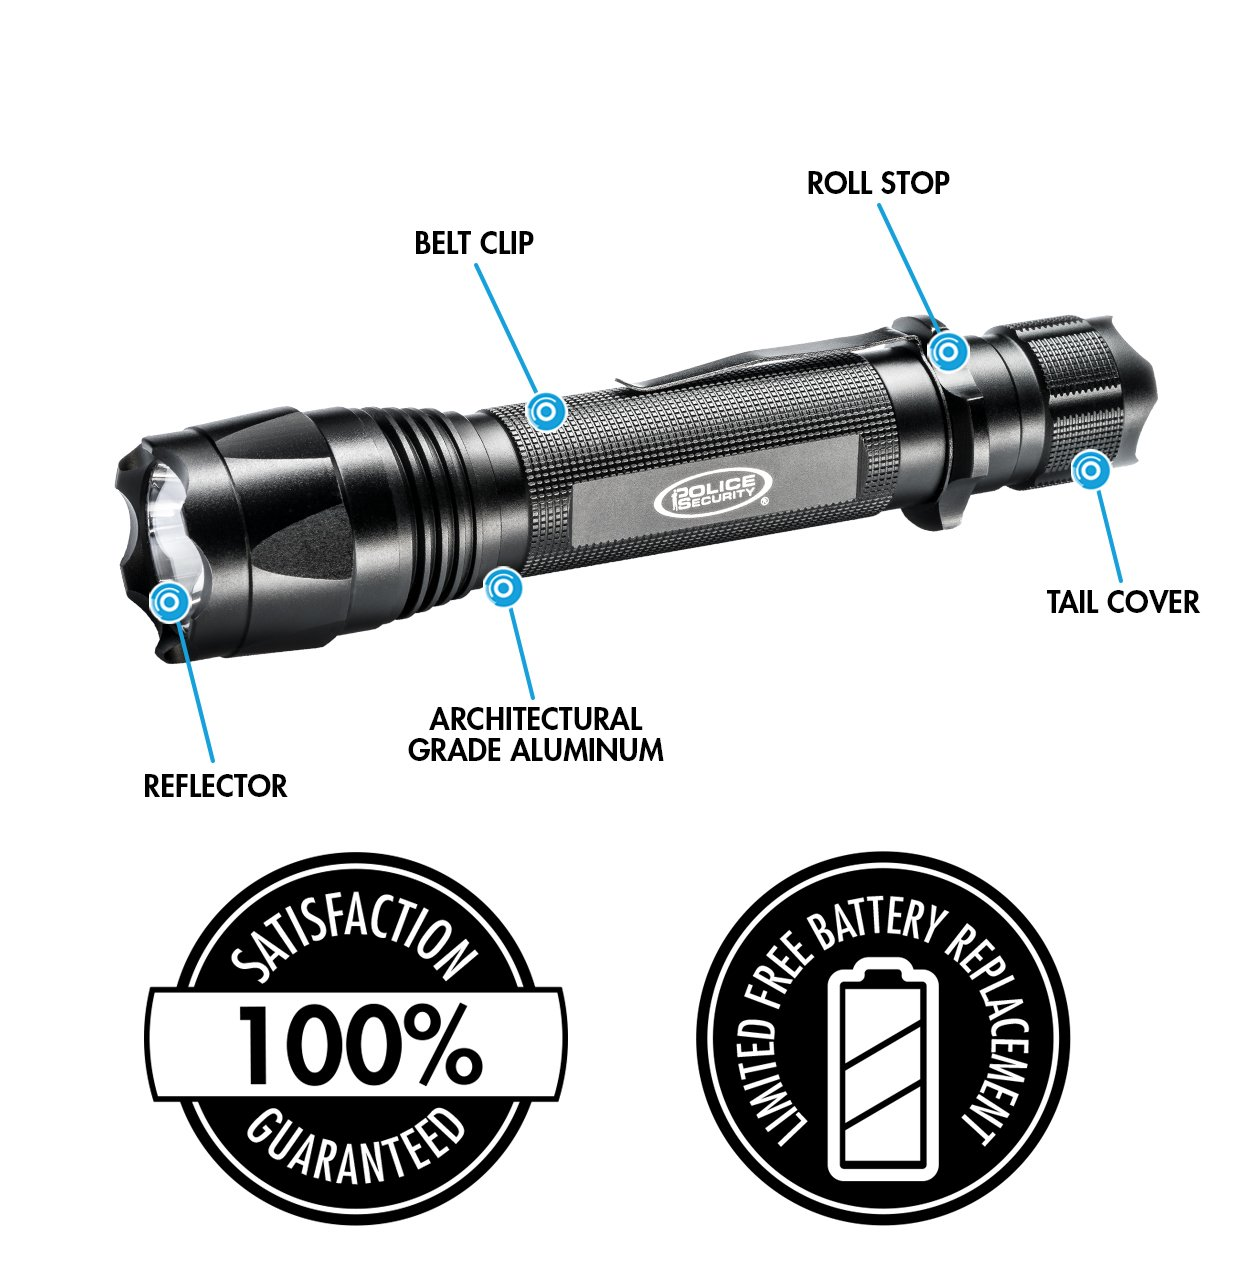 Police Security Knightstick 2AA Ultra Bright Flashlight - Cree LED - 190 Lumen - Tactical - Water Resistant - High/Low/Flash by Police Security Extreme